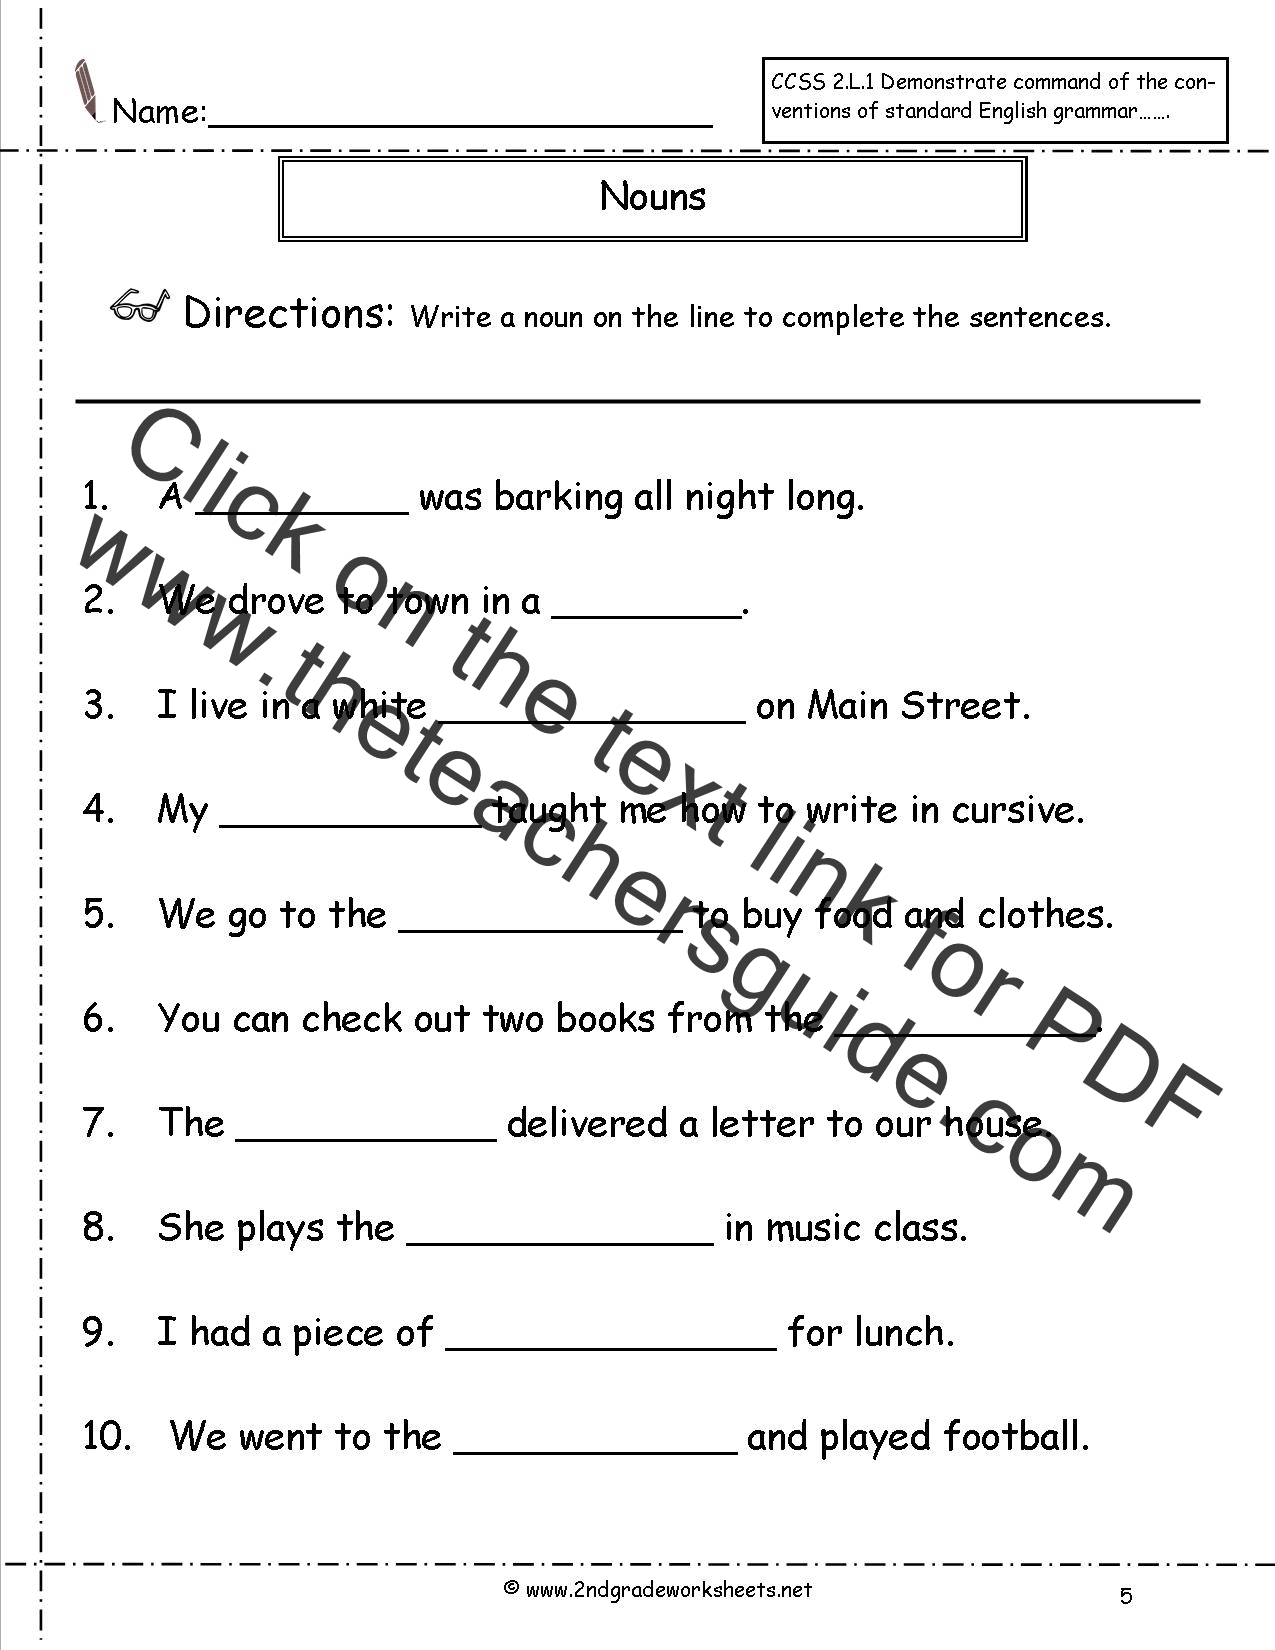 Nouns Worksheets and Printouts – Pronoun Worksheets 2nd Grade